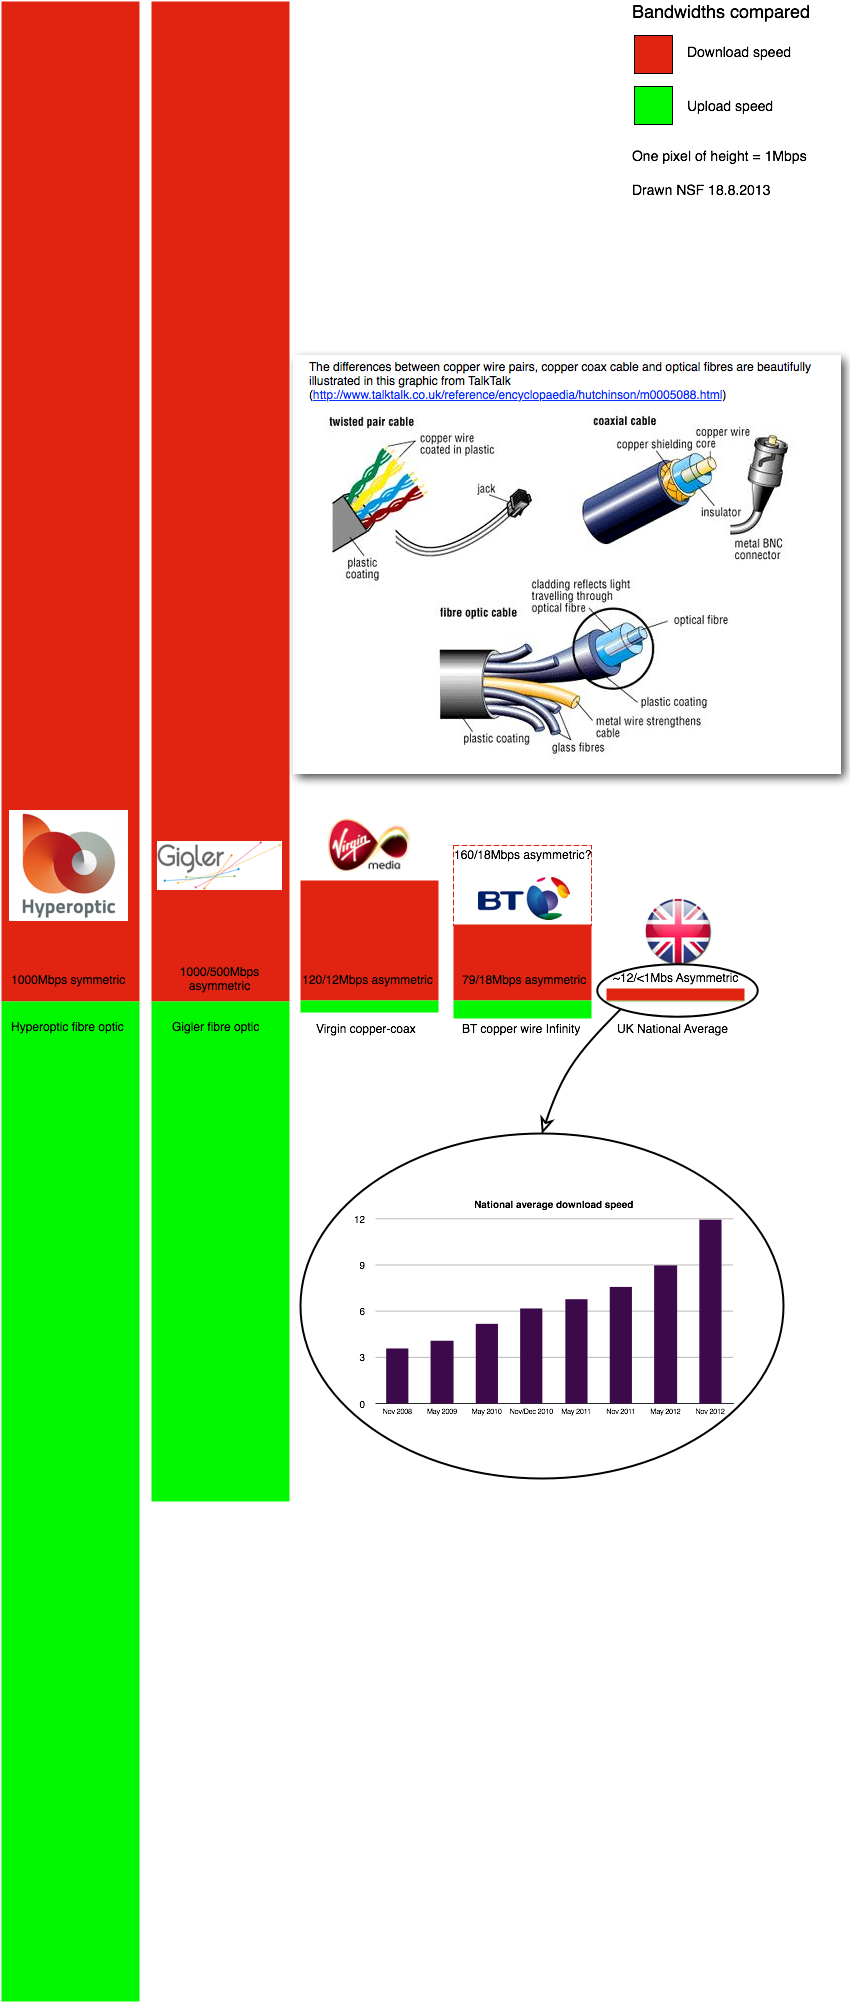 Broadband compared.png